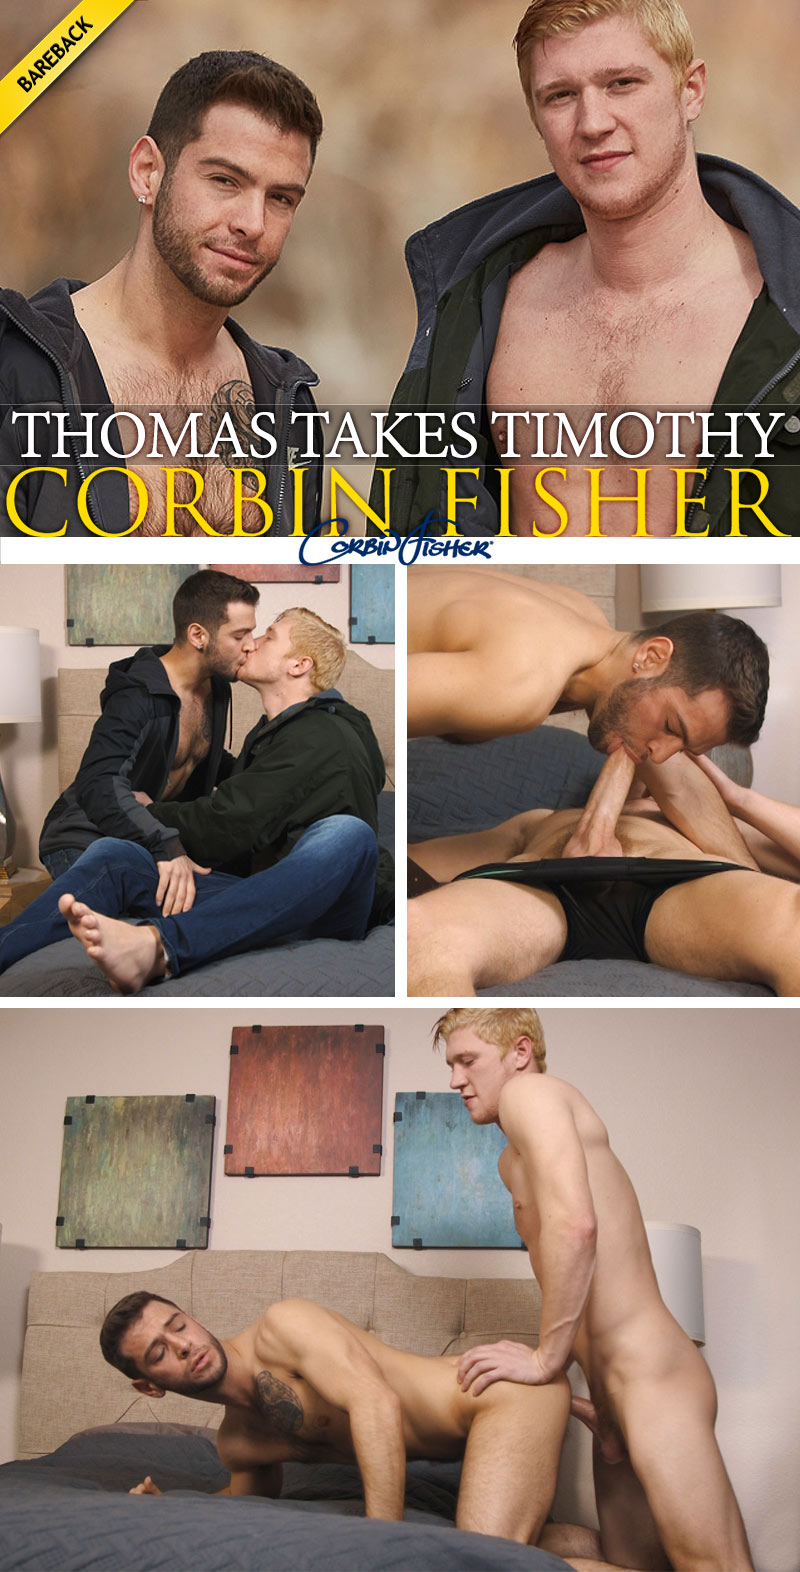 Thomas Takes Timothy (Bareback) at CorbinFisher